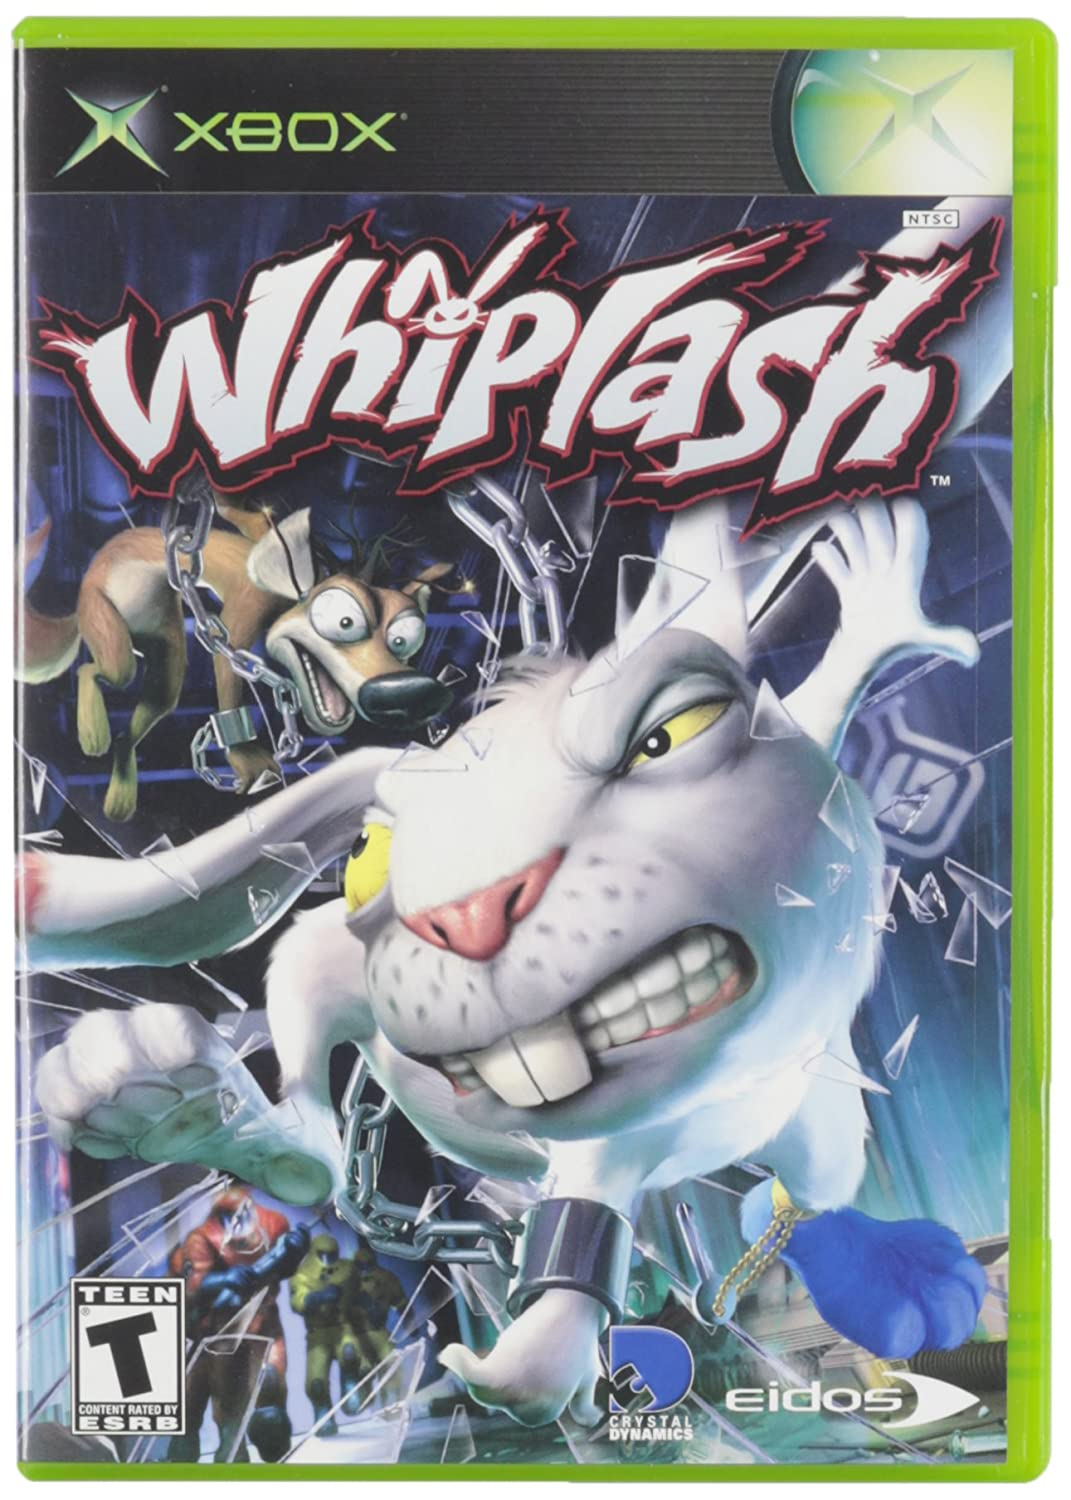 Whiplash stats facts